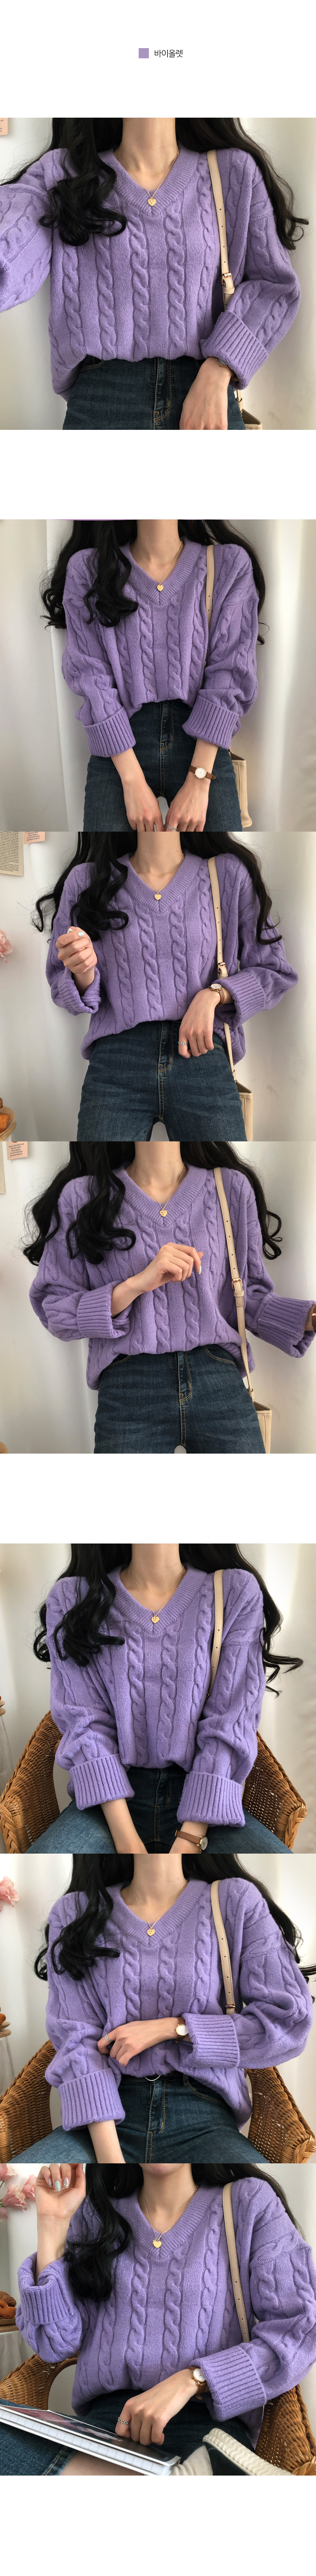 Schcony Twisted V-Neck Thick Knitwear